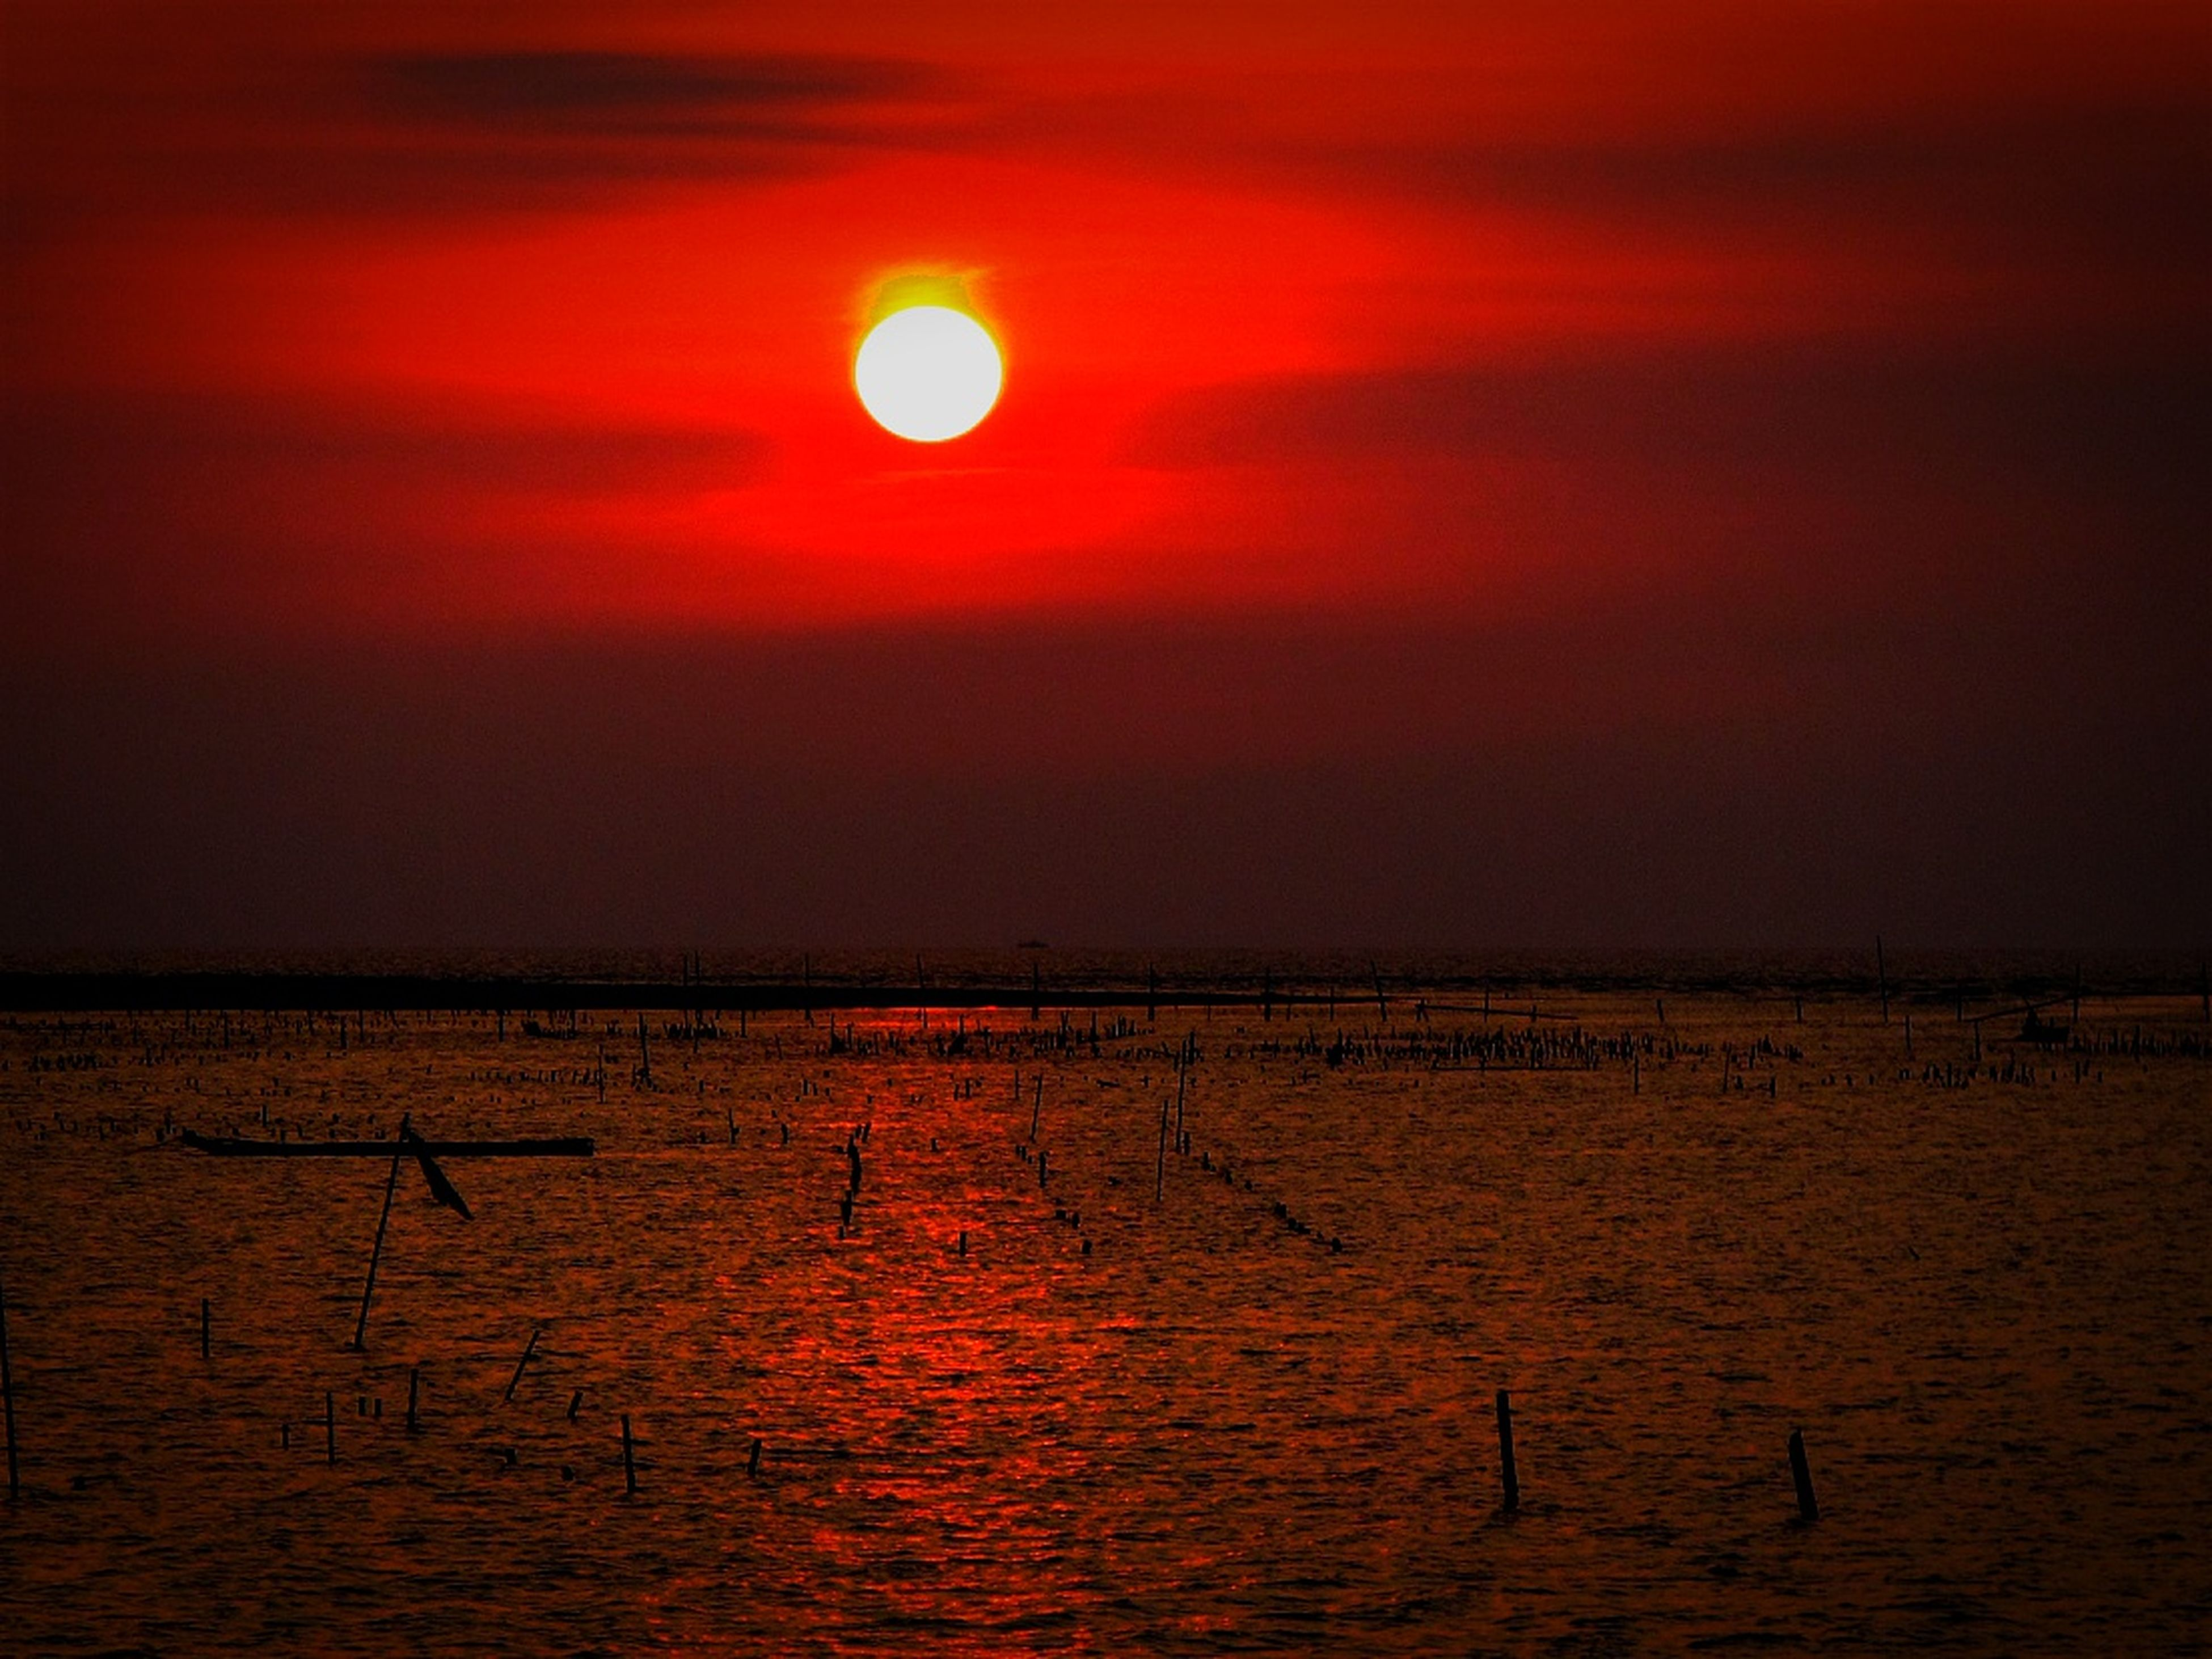 sunset, sun, orange color, water, scenics, tranquil scene, tranquility, sea, beauty in nature, idyllic, nature, sky, horizon over water, reflection, silhouette, waterfront, remote, outdoors, non-urban scene, no people